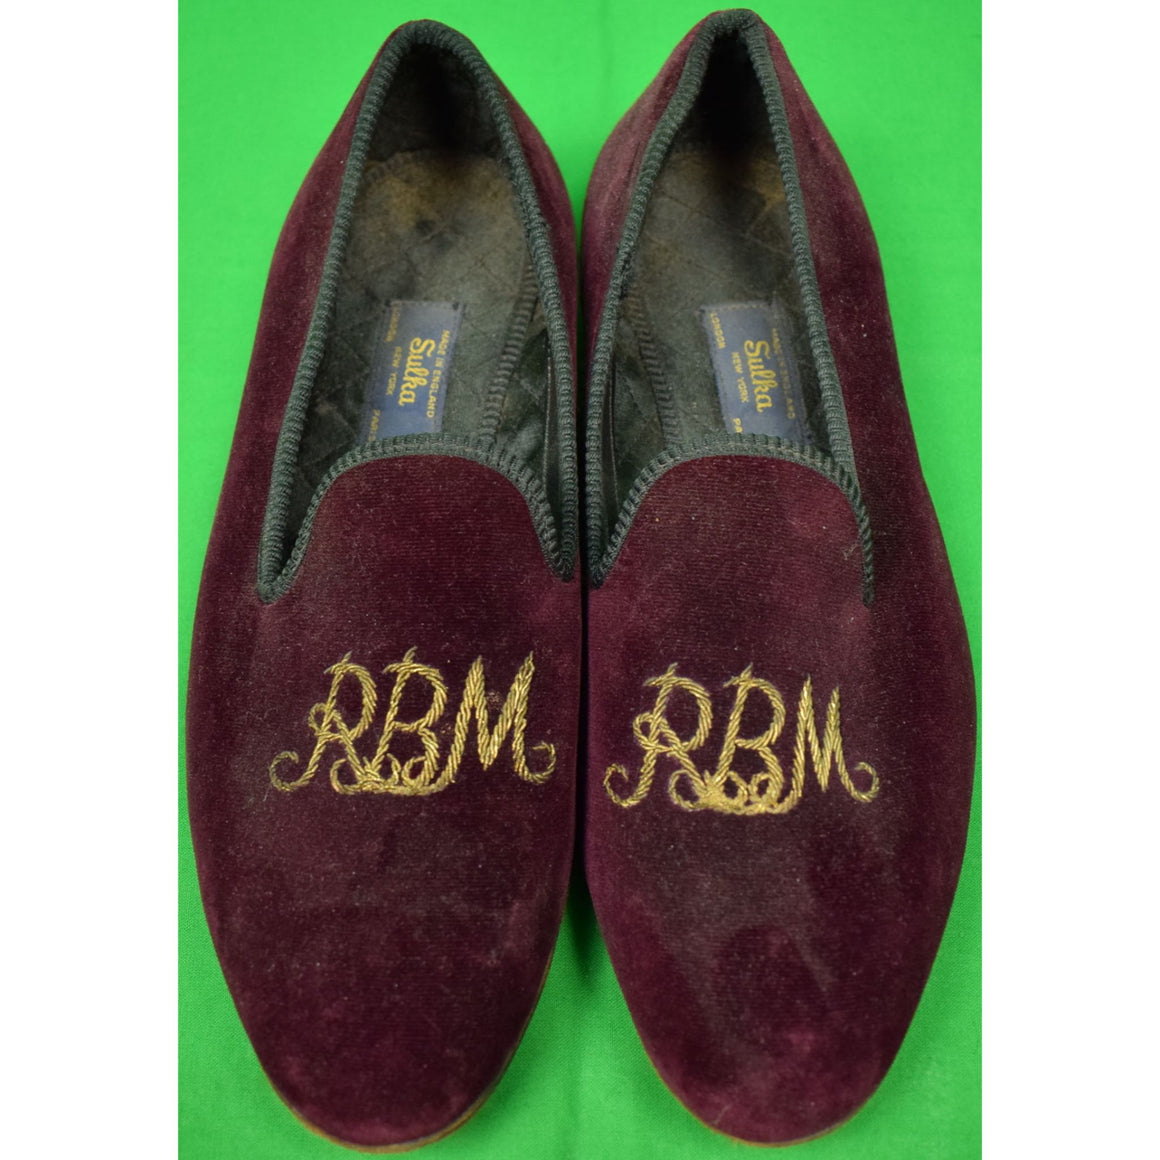 Sulka Claret Velvet English Slippers w/ 'RBM' Monogram Sz: 11